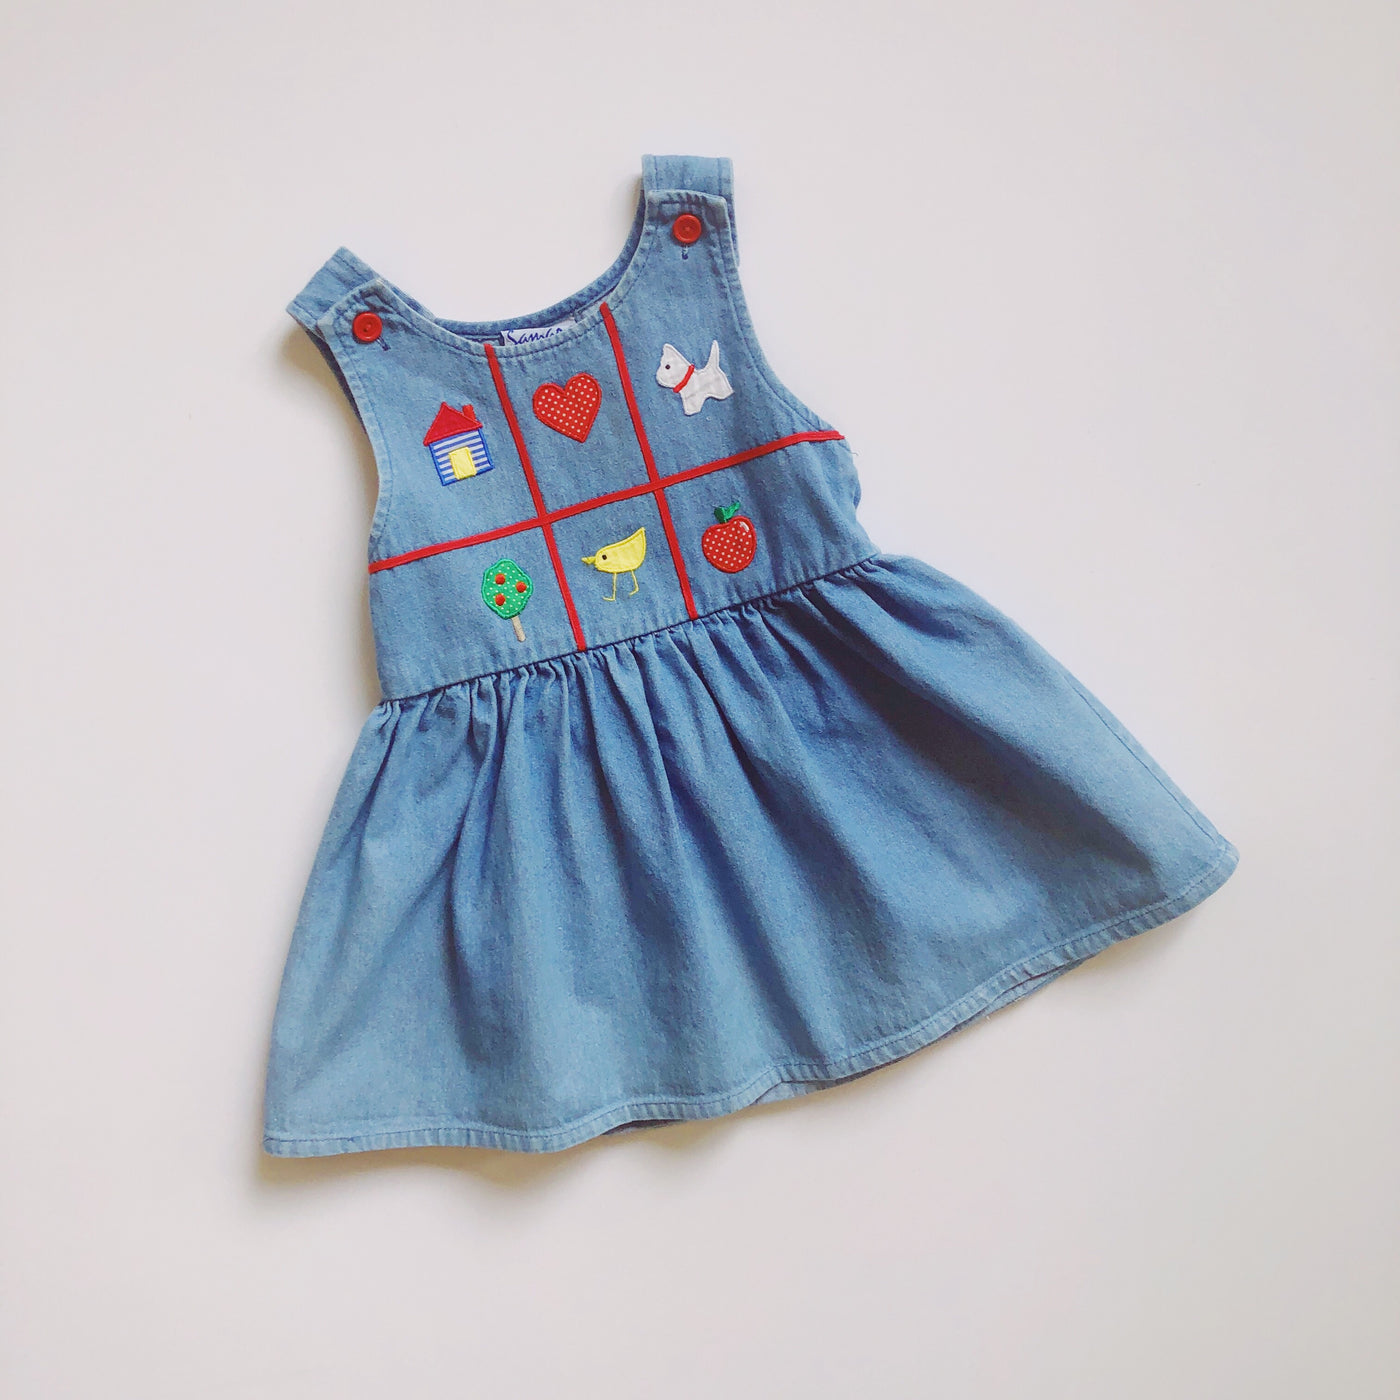 Samara Denim Schoolgirl Dress / Size 3T